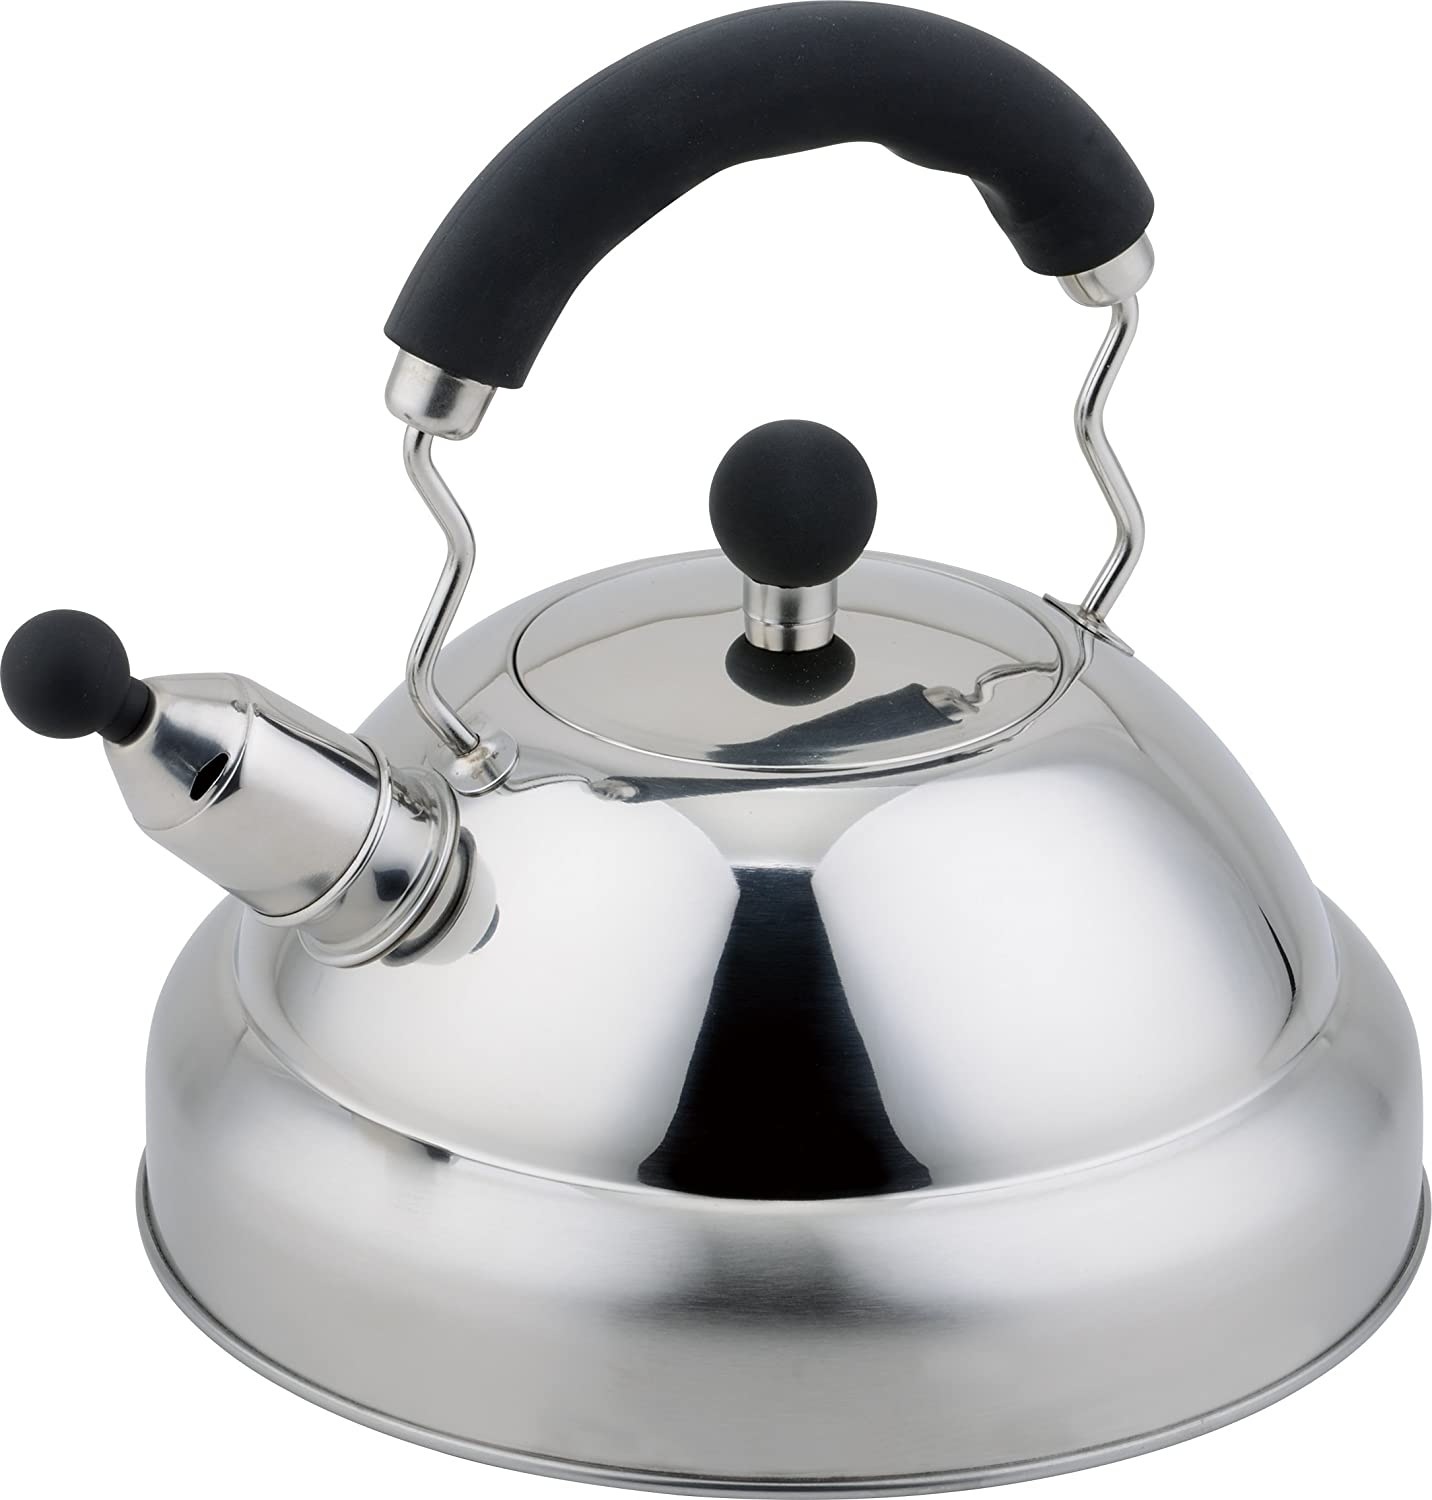 Buckingham Stove Top Induction Whistling Kettle 3 Litre - Stainless Steel Matt Finish with Black Soft Grip handle B & I International 17052